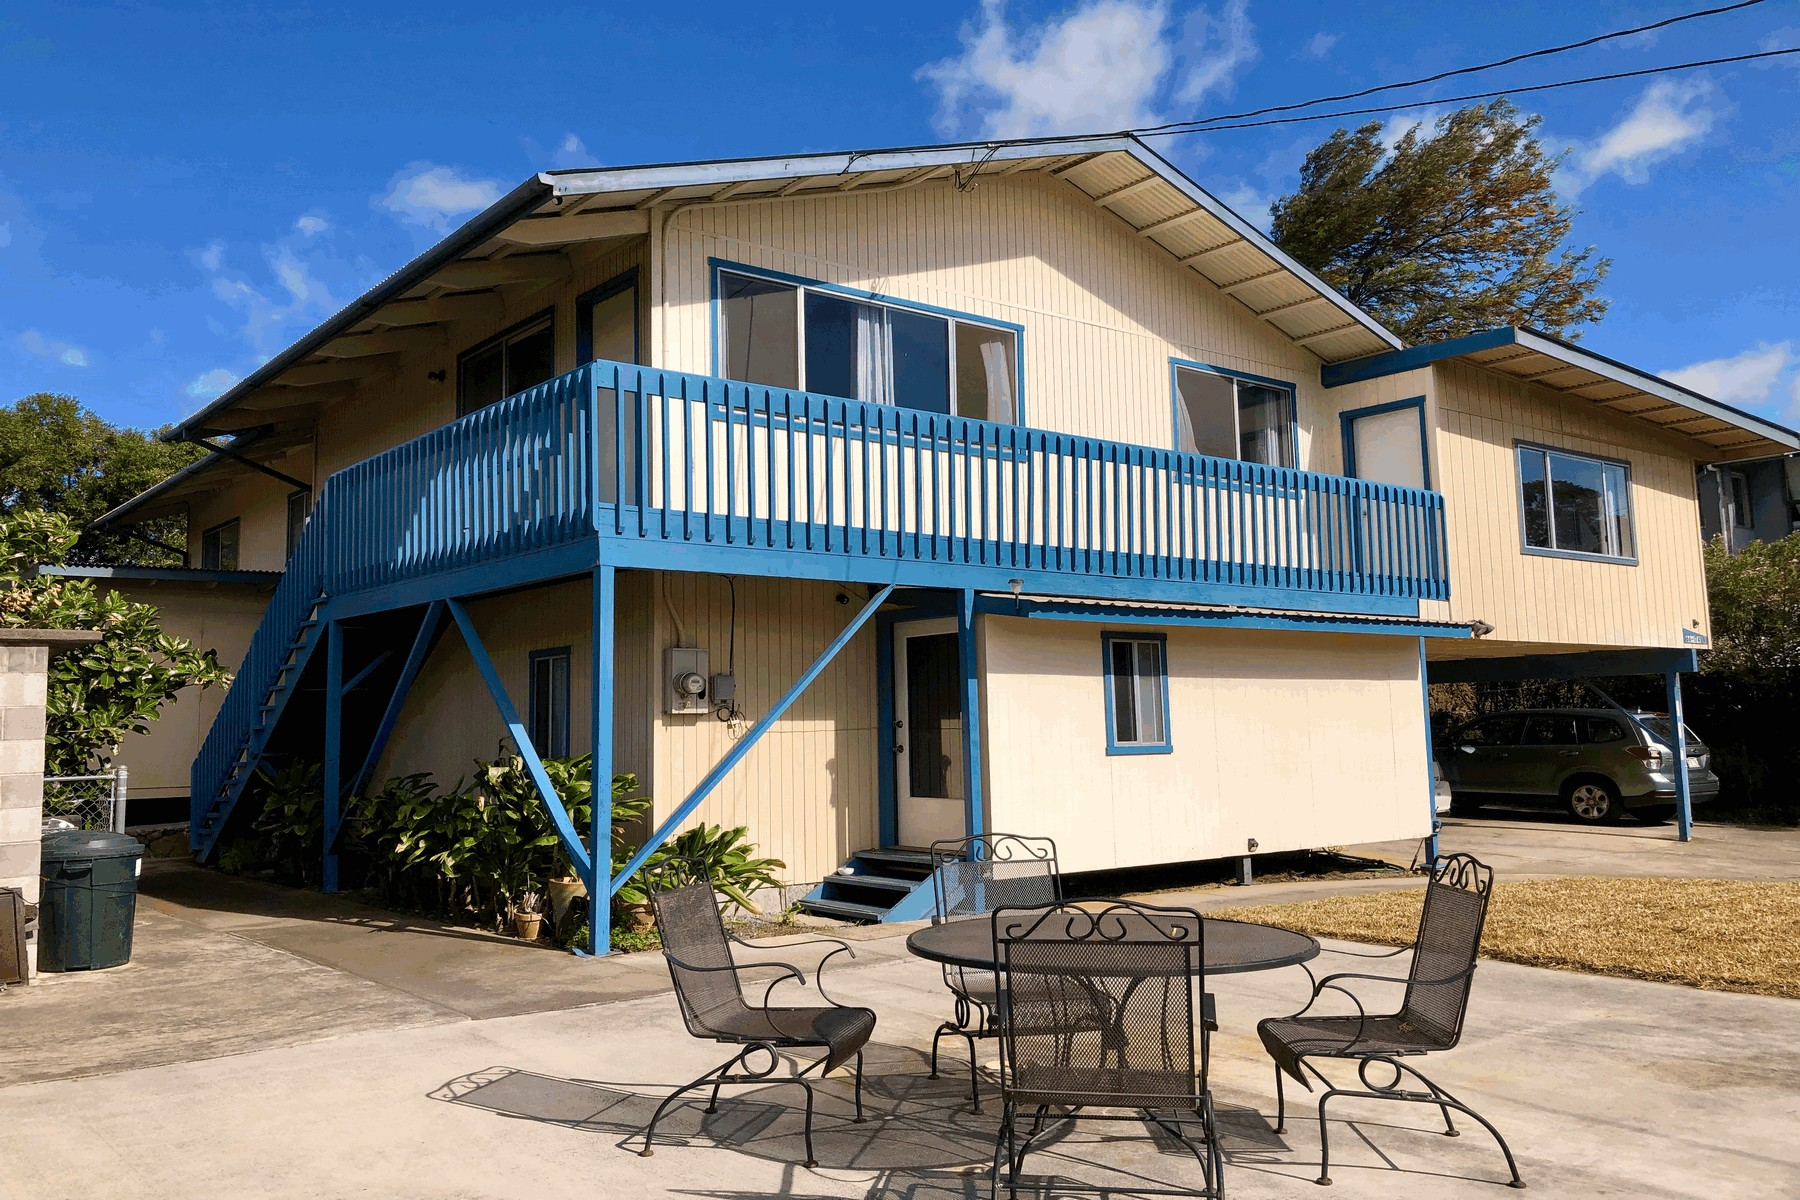 Single Family Home for Active at 66-1741-B KAWAIHAE RD Waimea, Hawaii 96743 United States